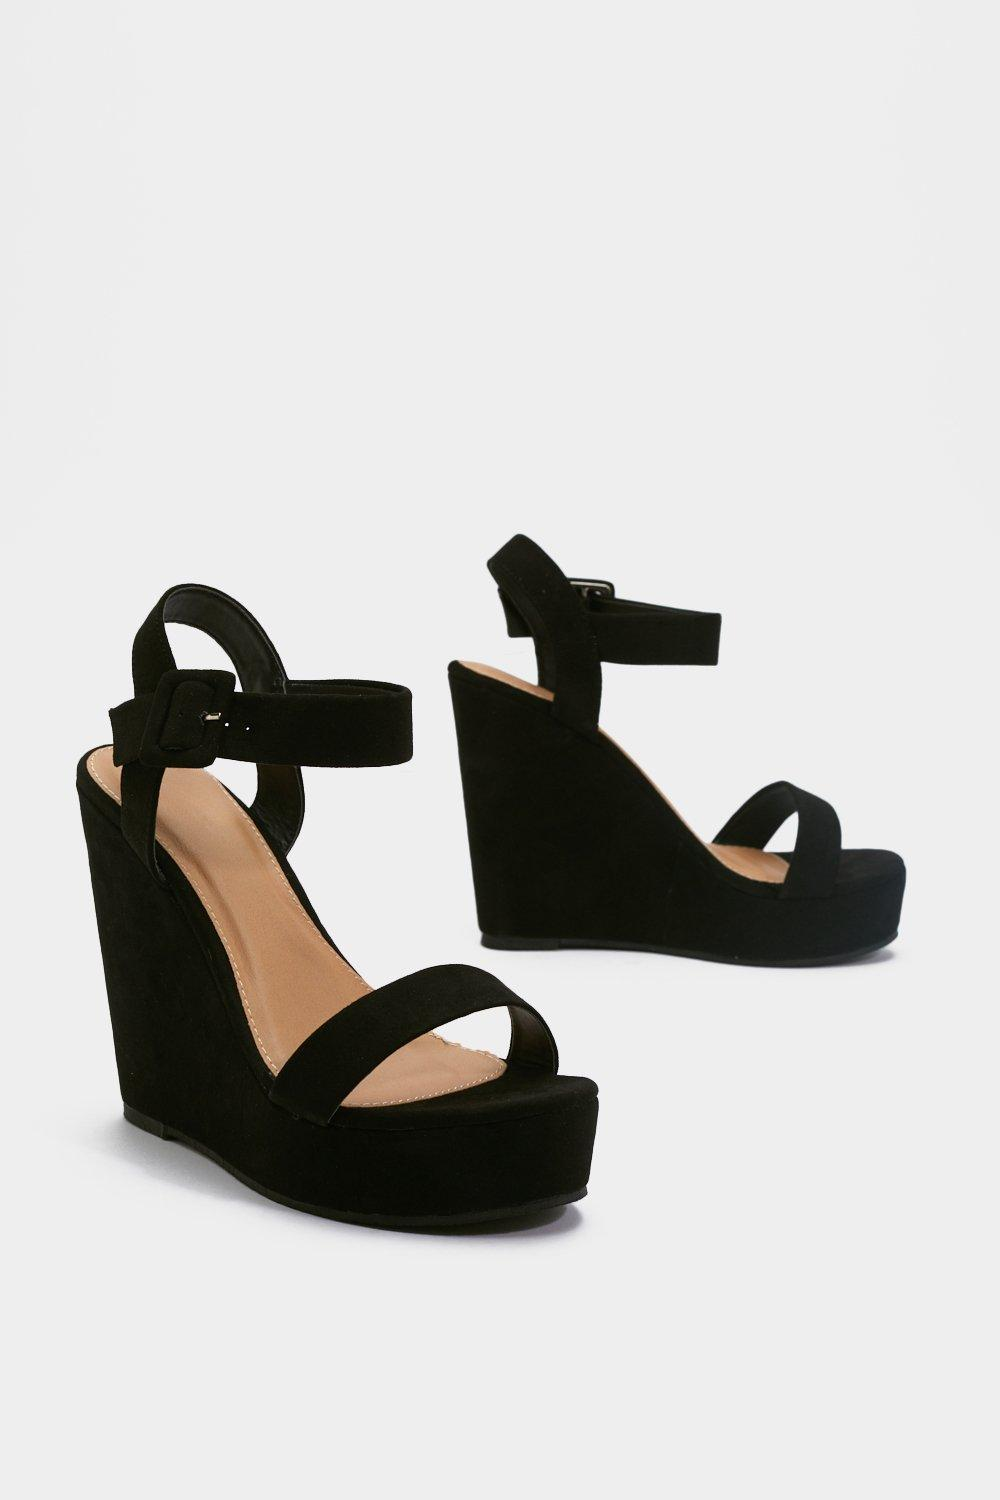 1d4d6fb5f4d High What's Up Faux Suede Wedges | Shop Clothes at Nasty Gal!